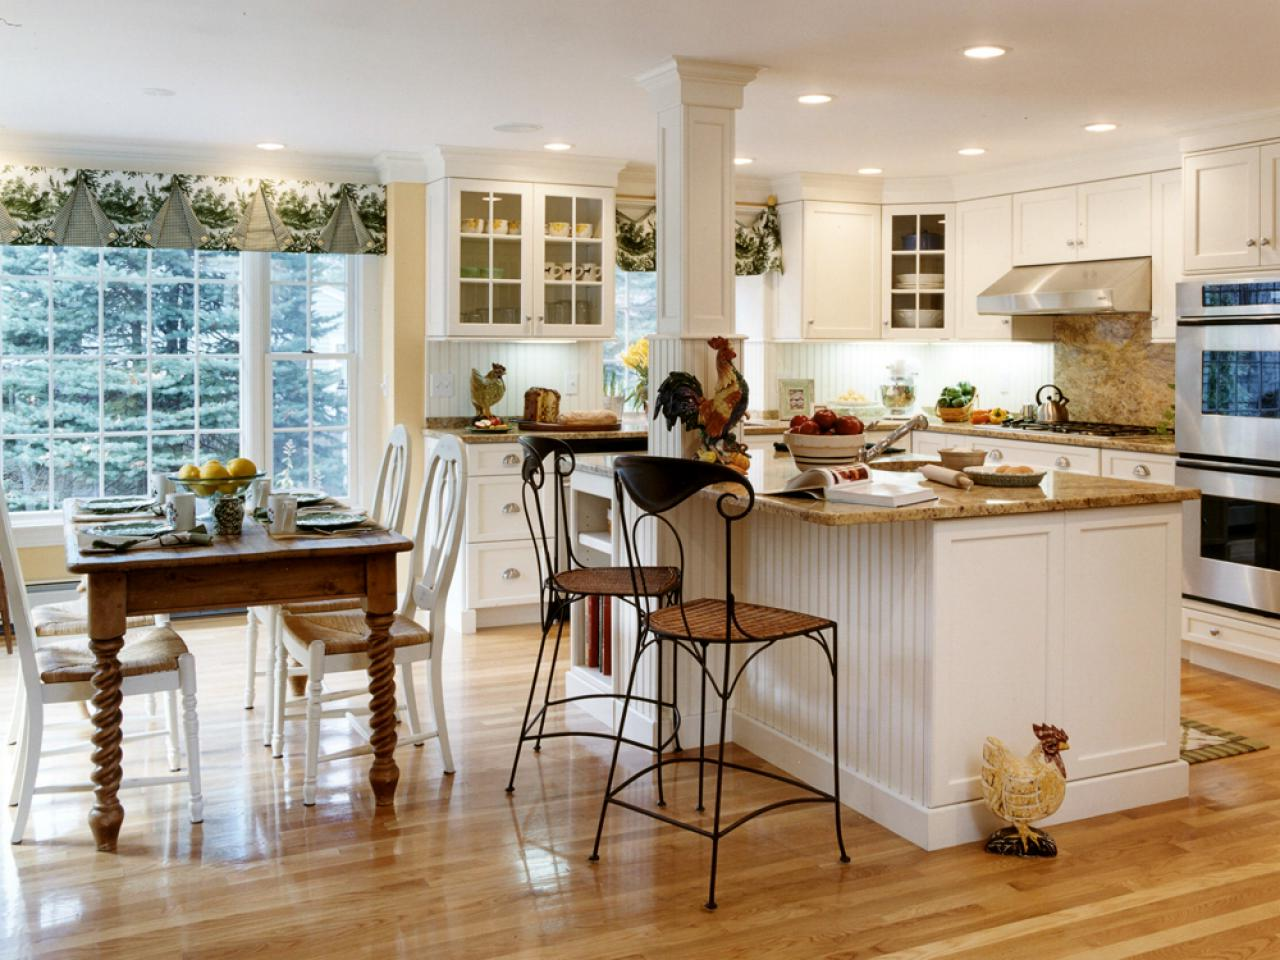 Country Style Kitchens Images Kitchen Design Images Kitchen In Country Style With